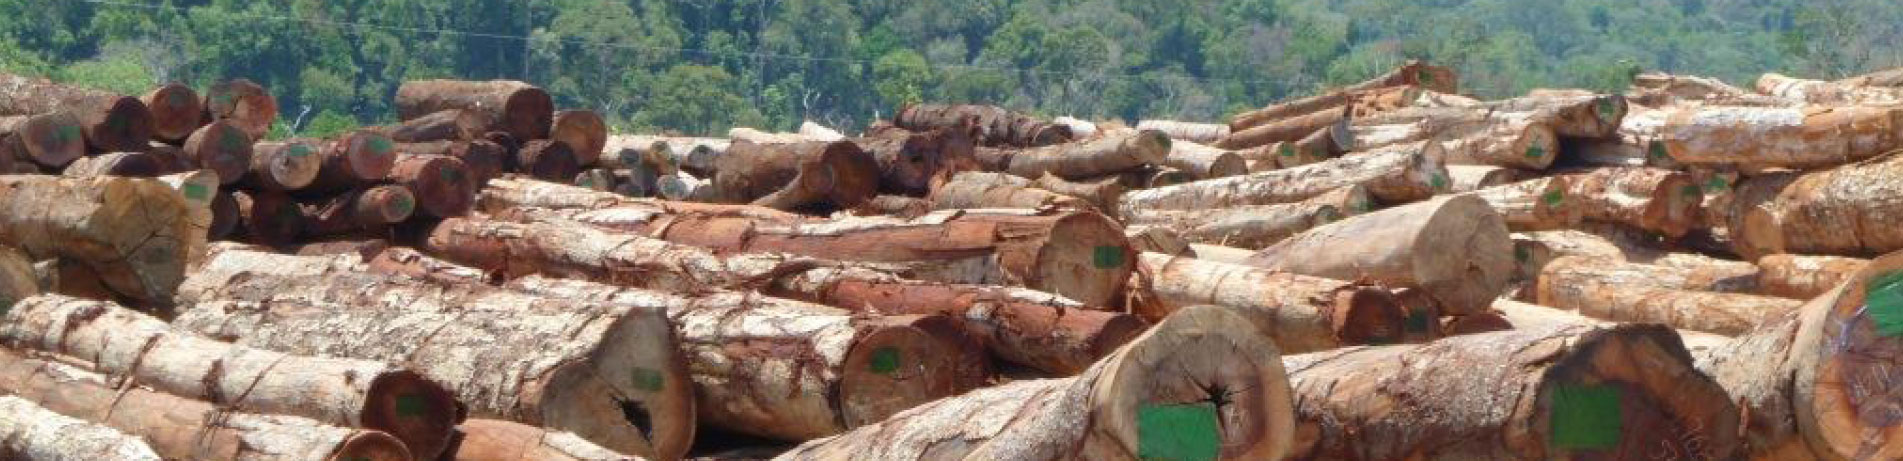 Stockplile of logs in Vietnam